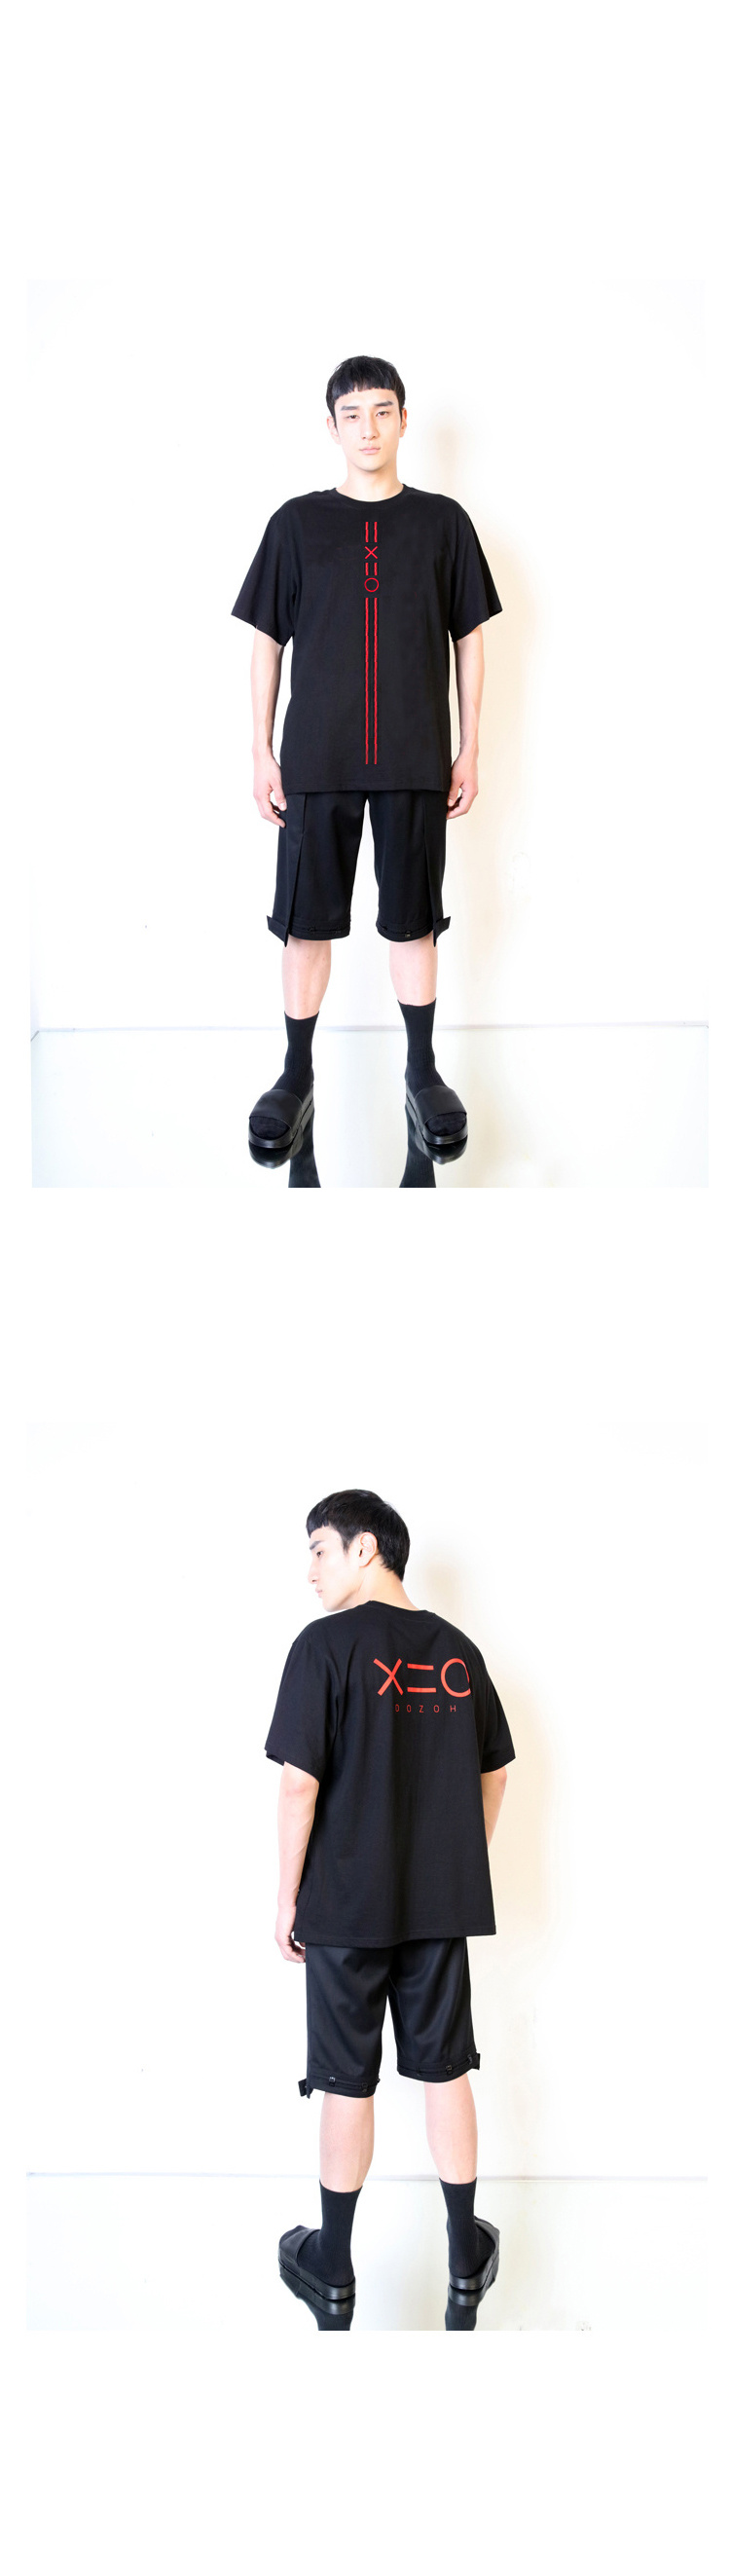 도조(DOZOH) BLACK DOZOH RED EQUAL V LINE&LOGO T-SHIRTS 2